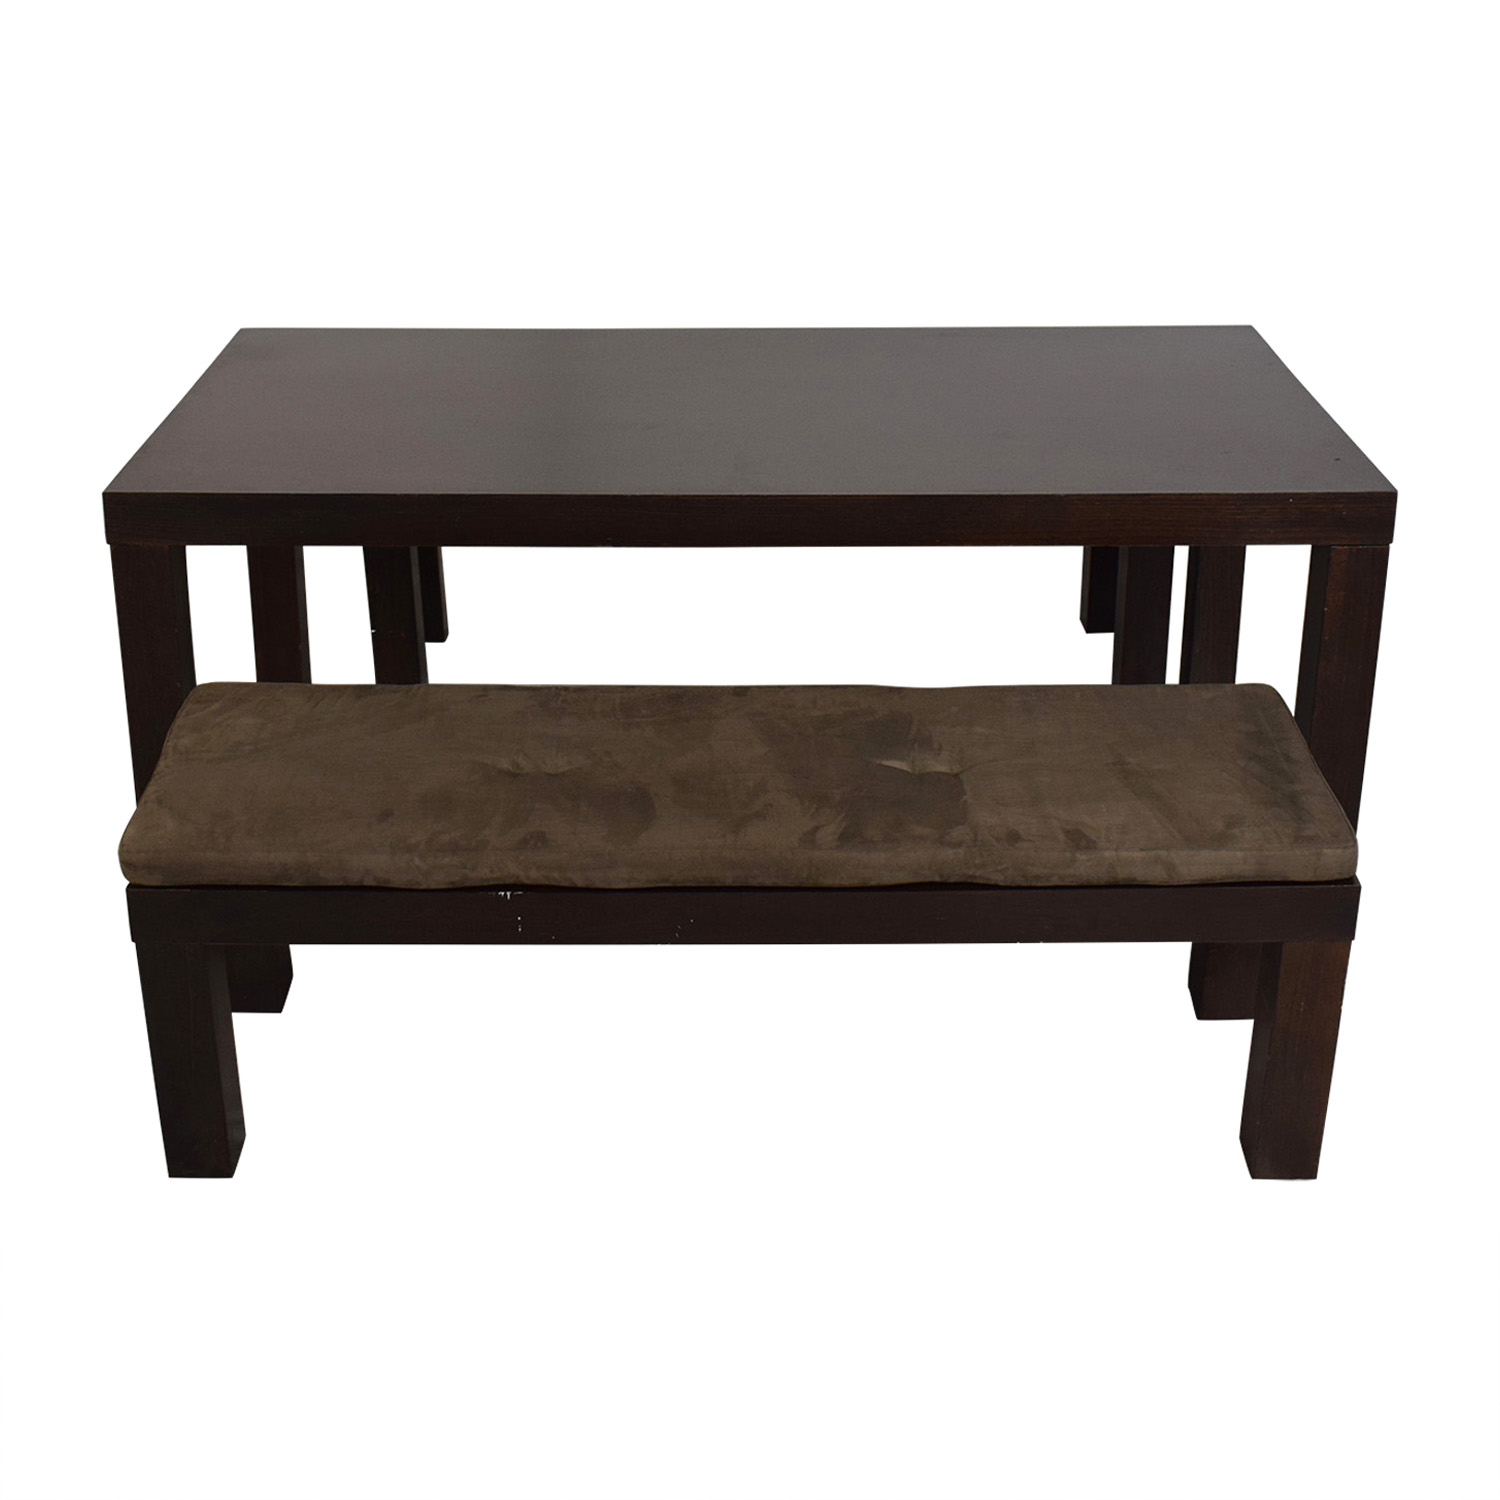 CB2 CB2 Indie Dining Table with Benches dimensions